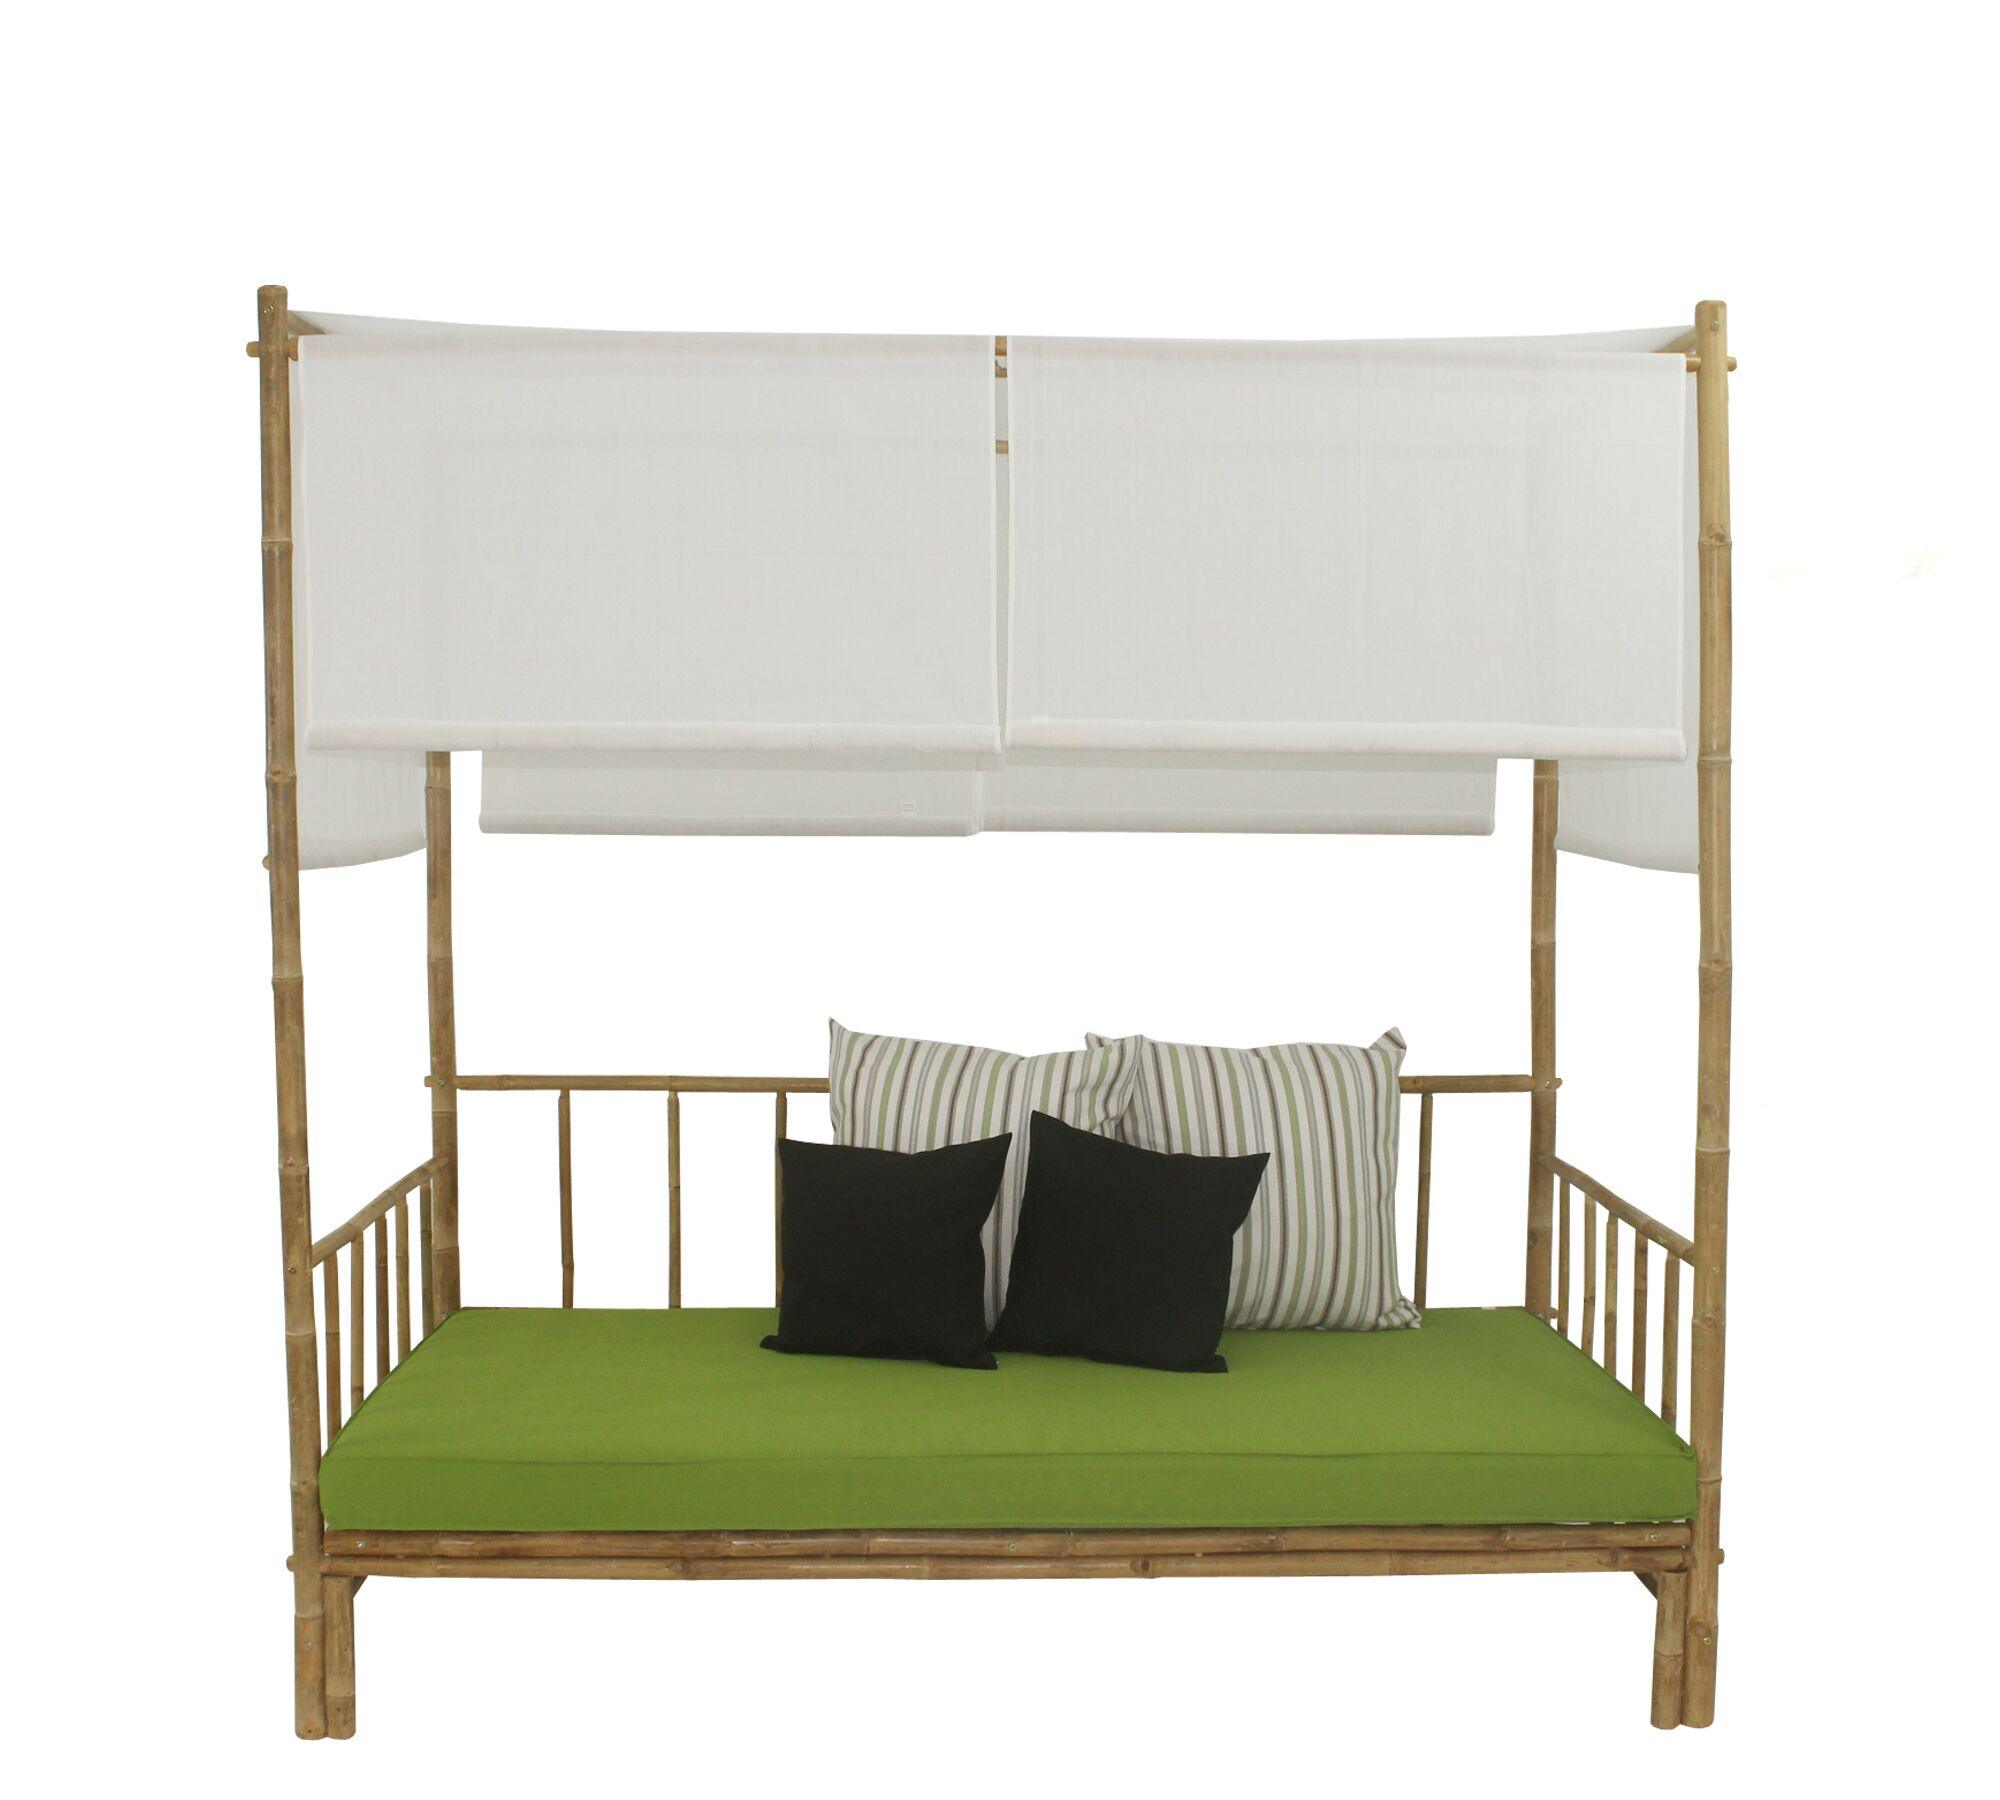 Eoin Bamboo Patio Daybed with Cushions and Canopy and Mattress Fabric Color: Green